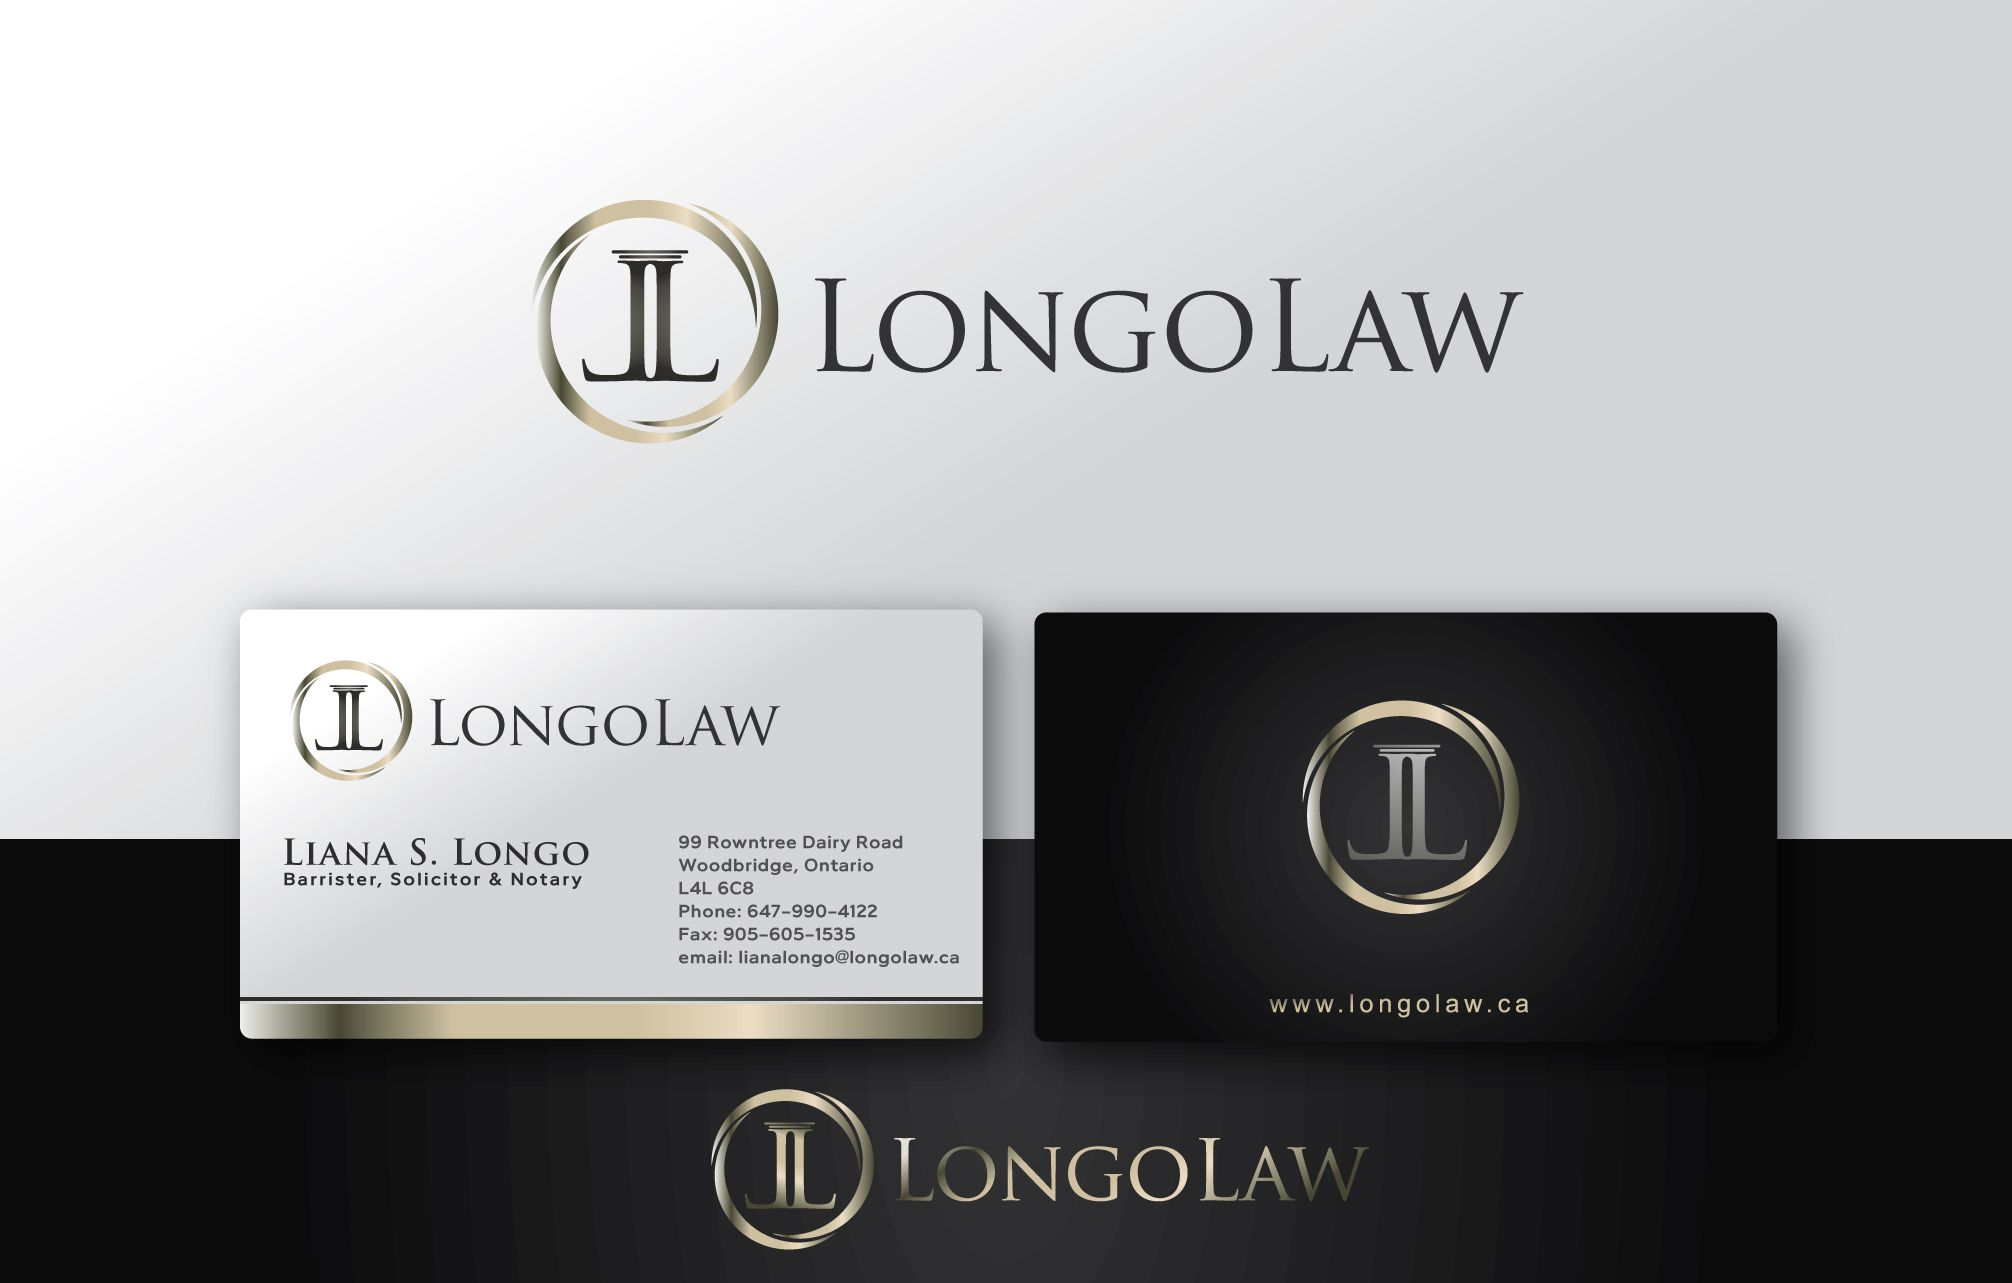 Logo and business card for liana s longo lawyer longo law 99 logo and business card for liana s longo lawyer longo law 99 rowntree magicingreecefo Image collections